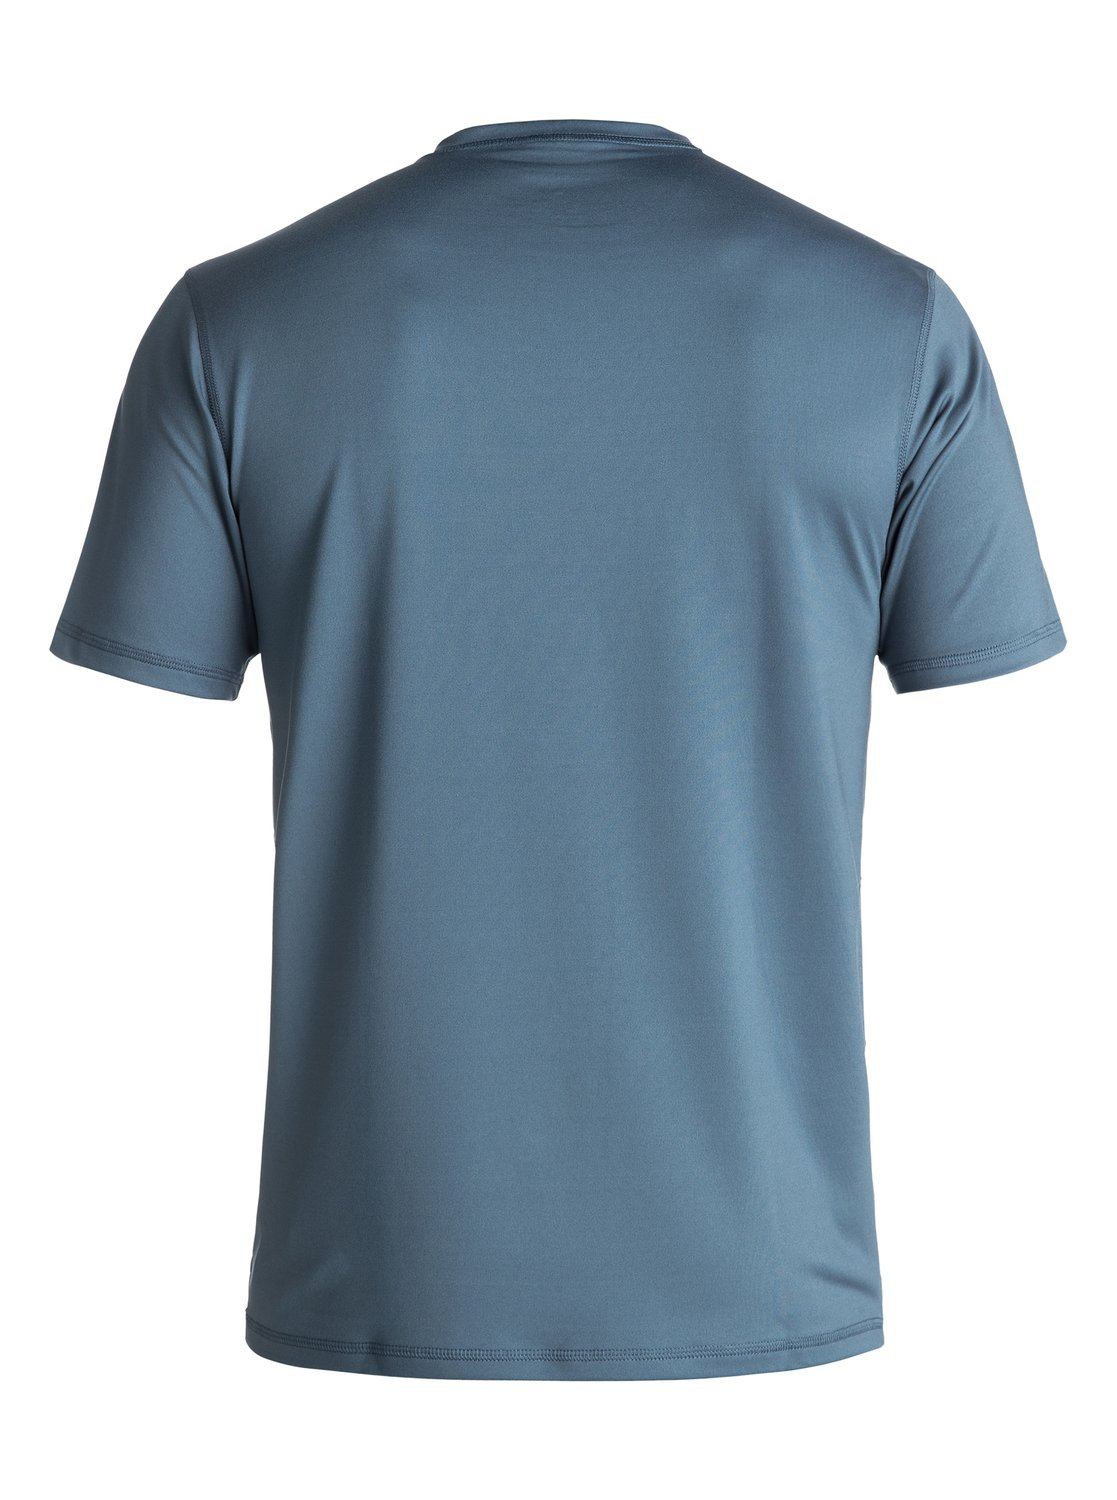 Lycra Quiksilver Scrypto Surf Amphibian Tee (Real Teal) Ss18